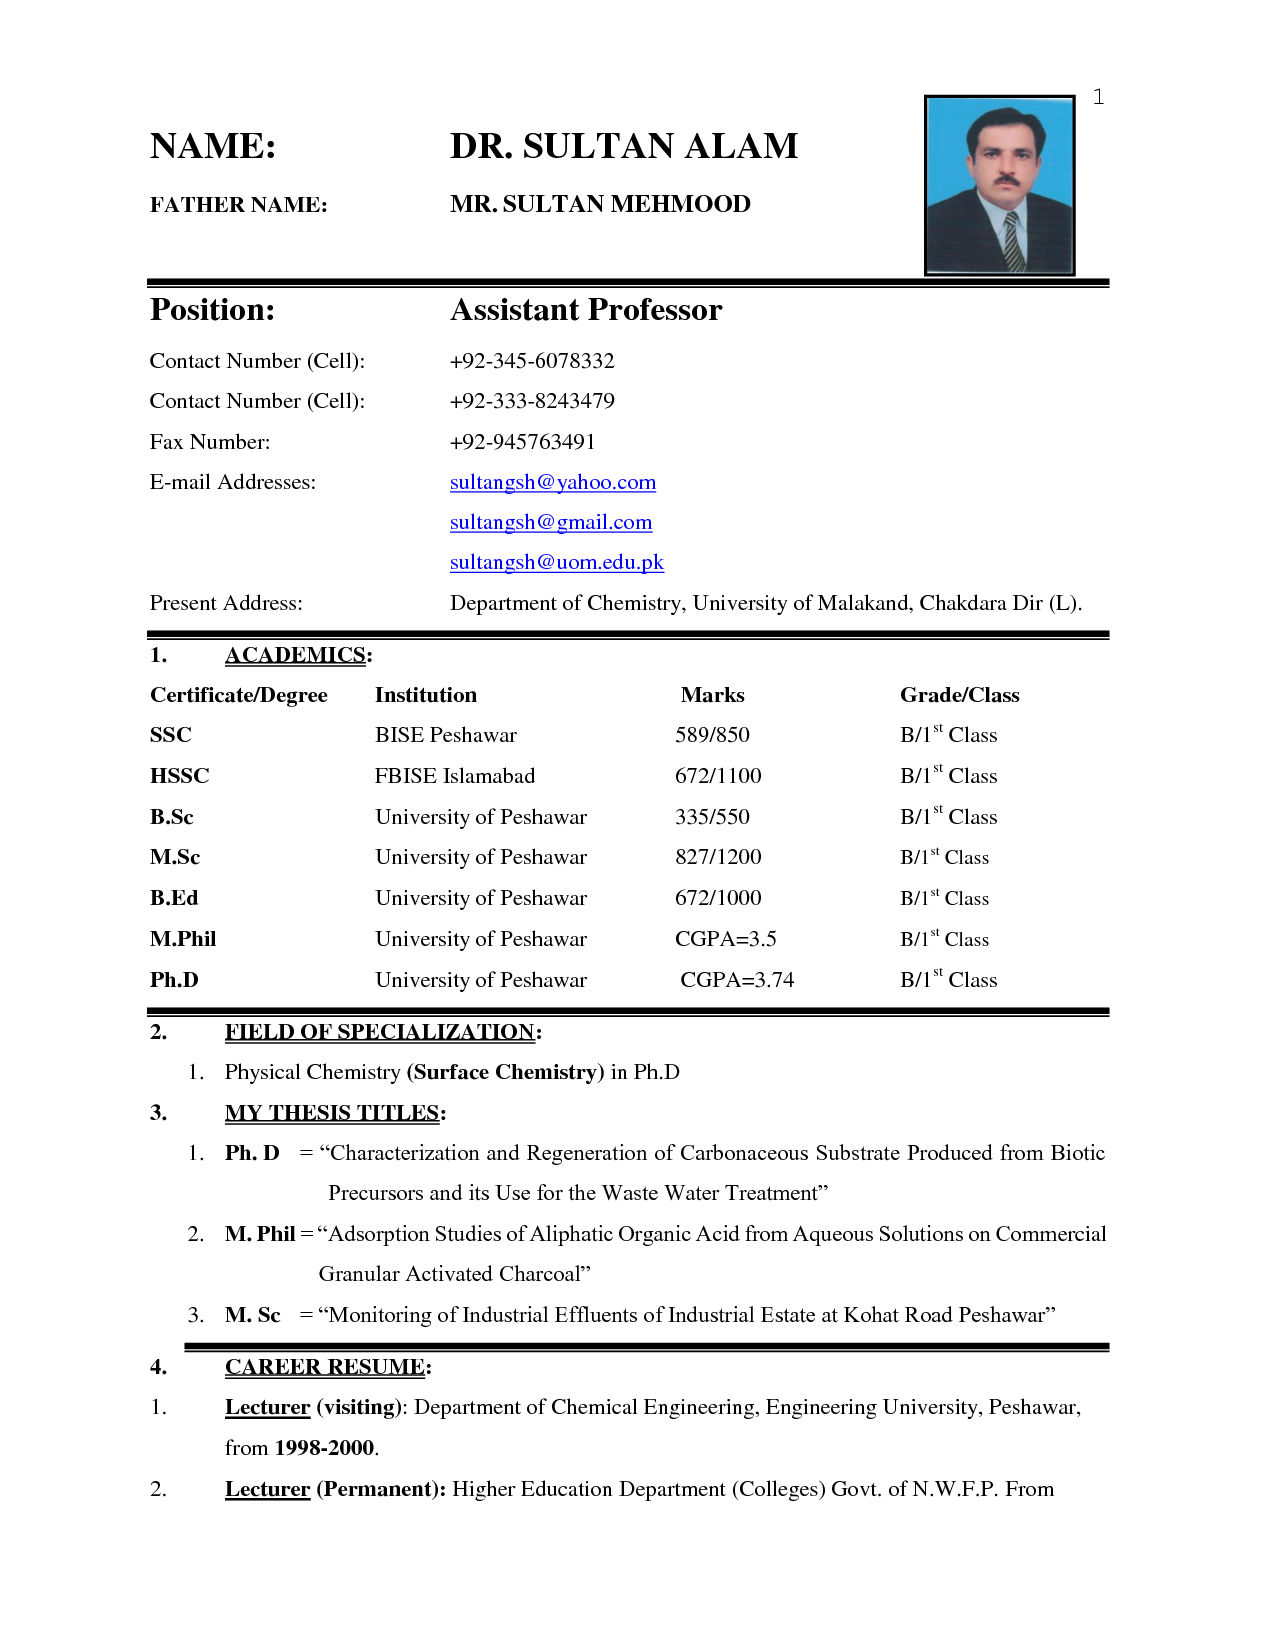 biodata resume format - Format For Resume For Job